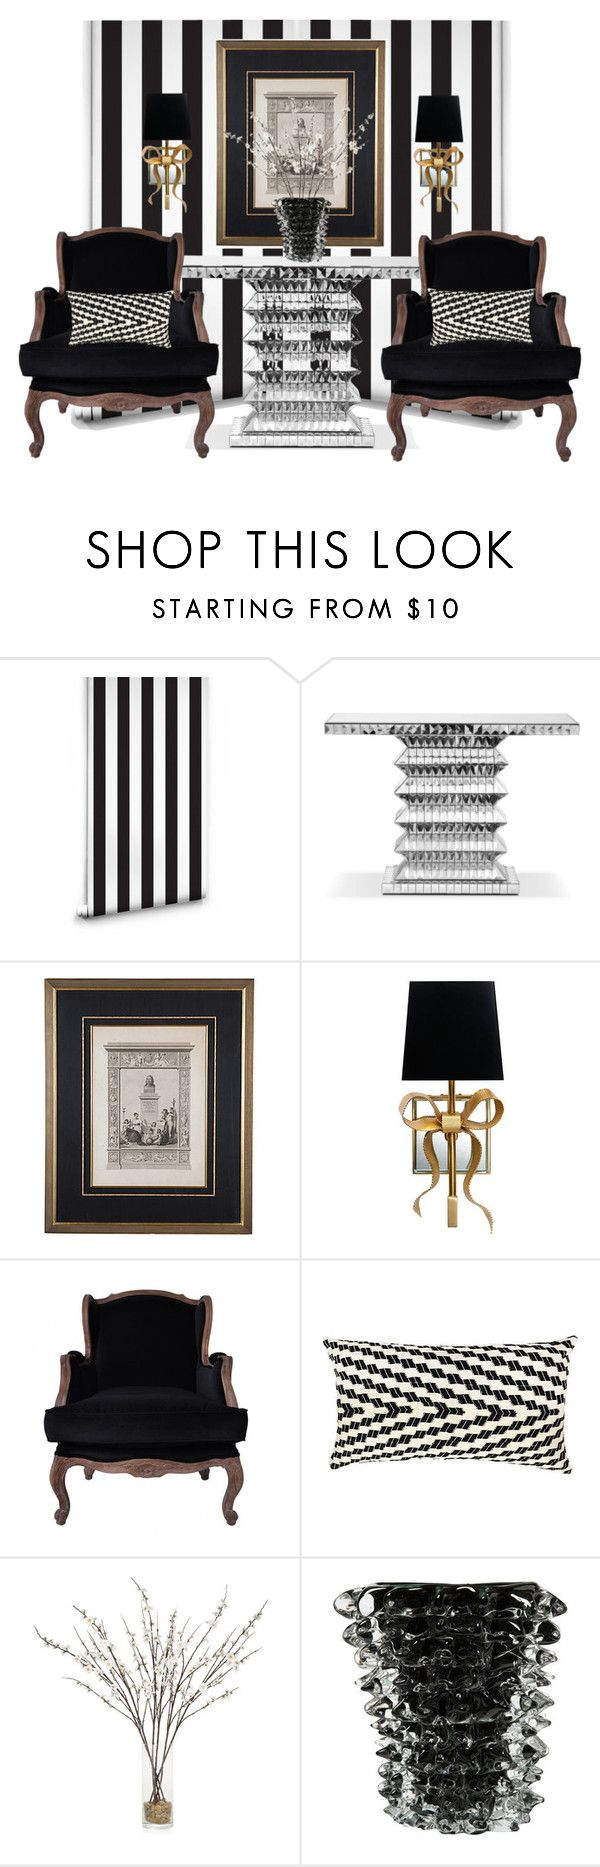 """19th-C Neoclassical Lithograph..."" by gloriettequartet ❤ liked on Polyvore featuring interior, interiors, interior design, home, home decor, interior decorating, Milton & King, Tara Shaw Maison, Kate Spade and Carter Sinclair"